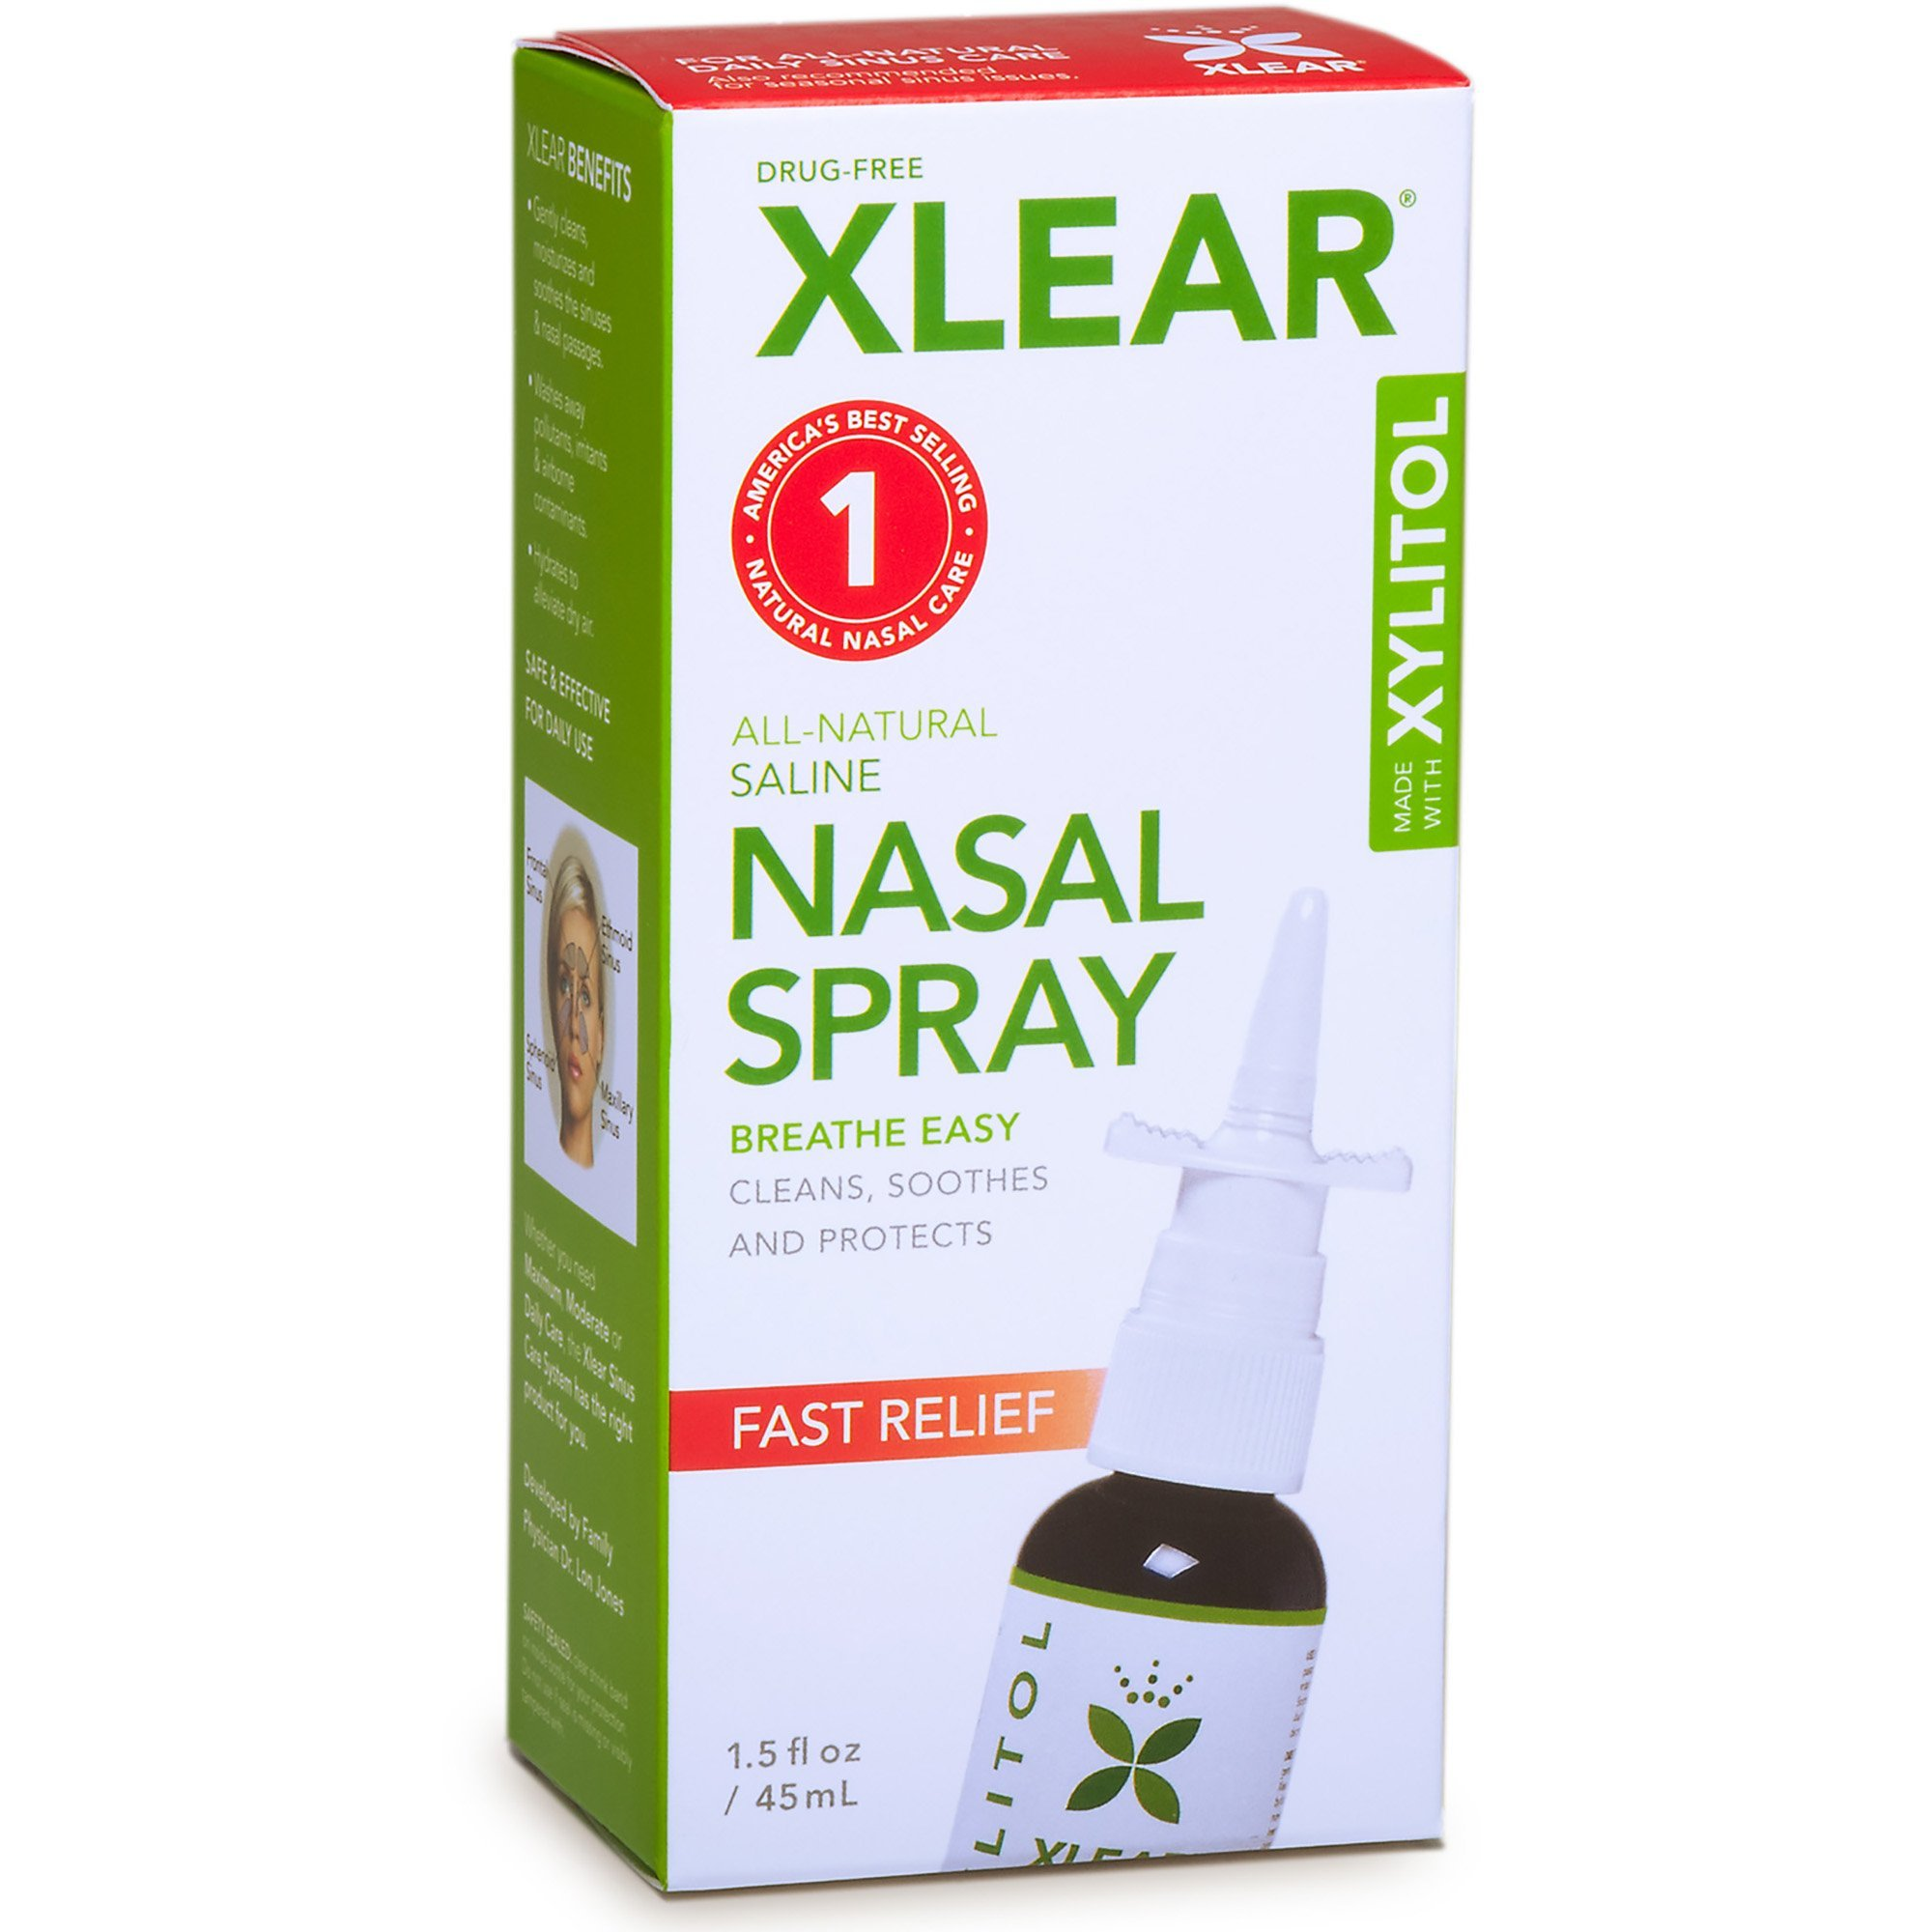 Which nose spray is the most effective